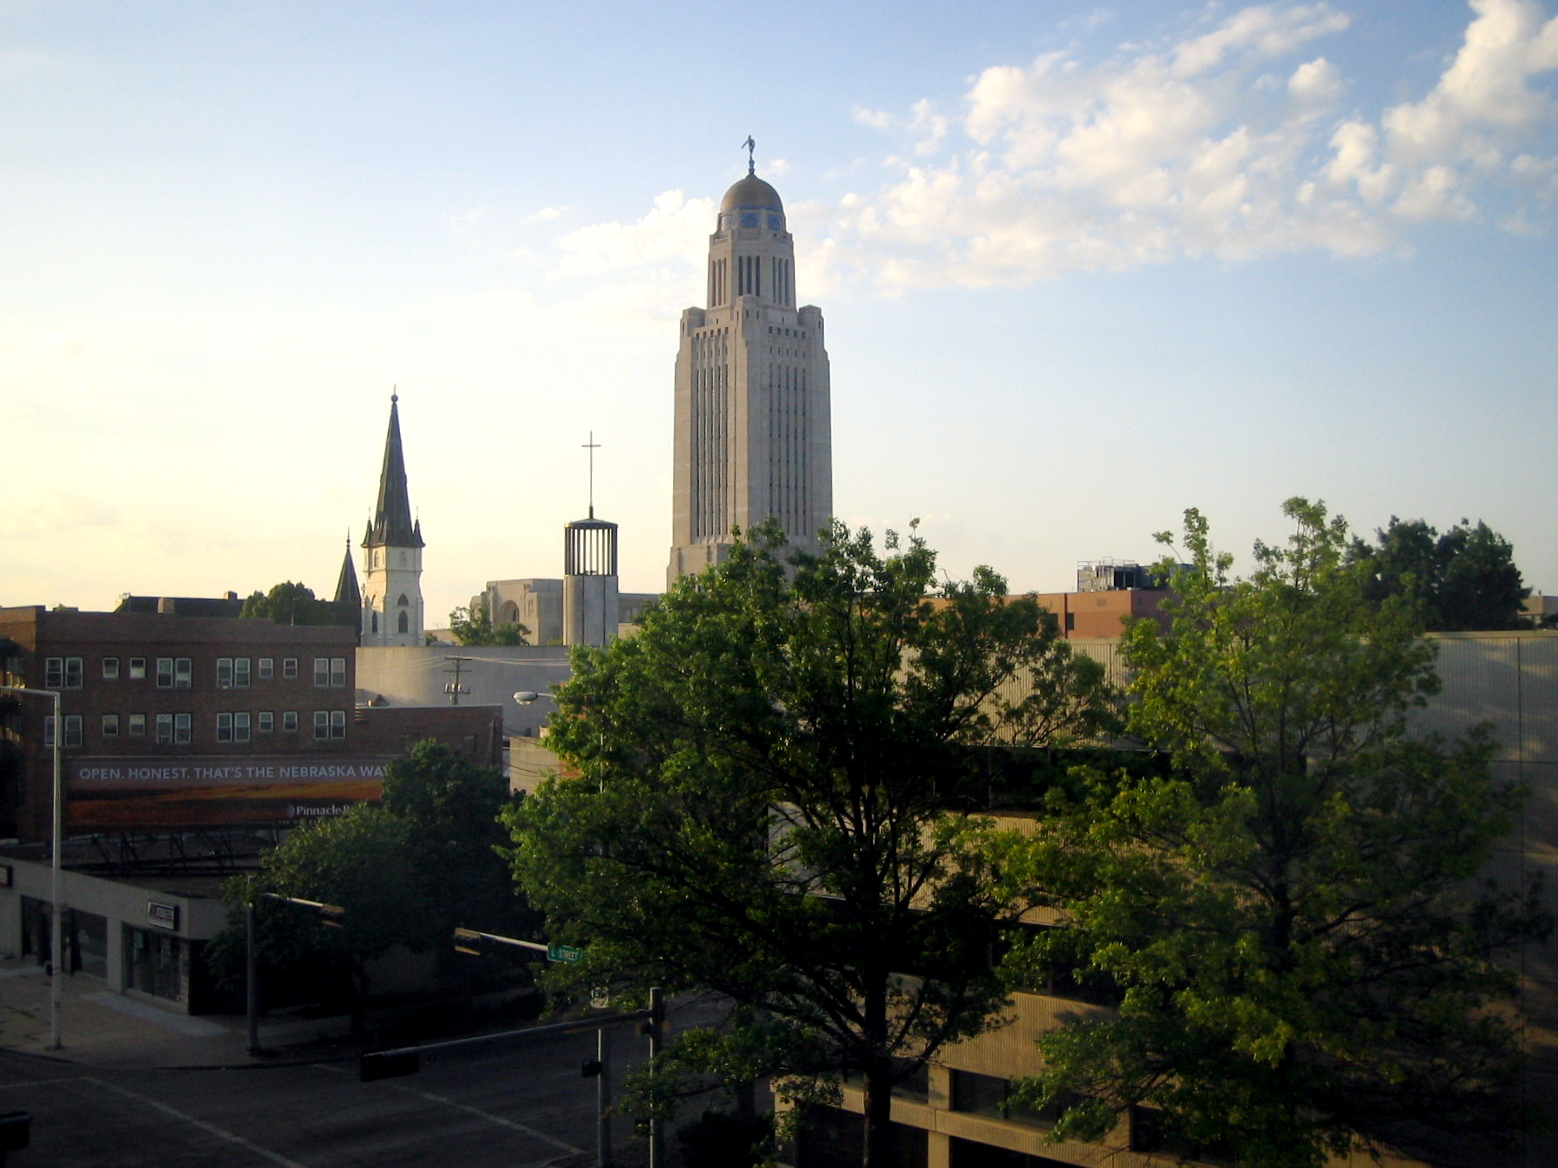 a history of how the lincoln city was established in cornhusker state nebraska Find this pin and more on the cornhusker hotel history by thecornhuskerh radisson cornhusker hotel lincoln nebraska nebraska state capitol, lincoln.